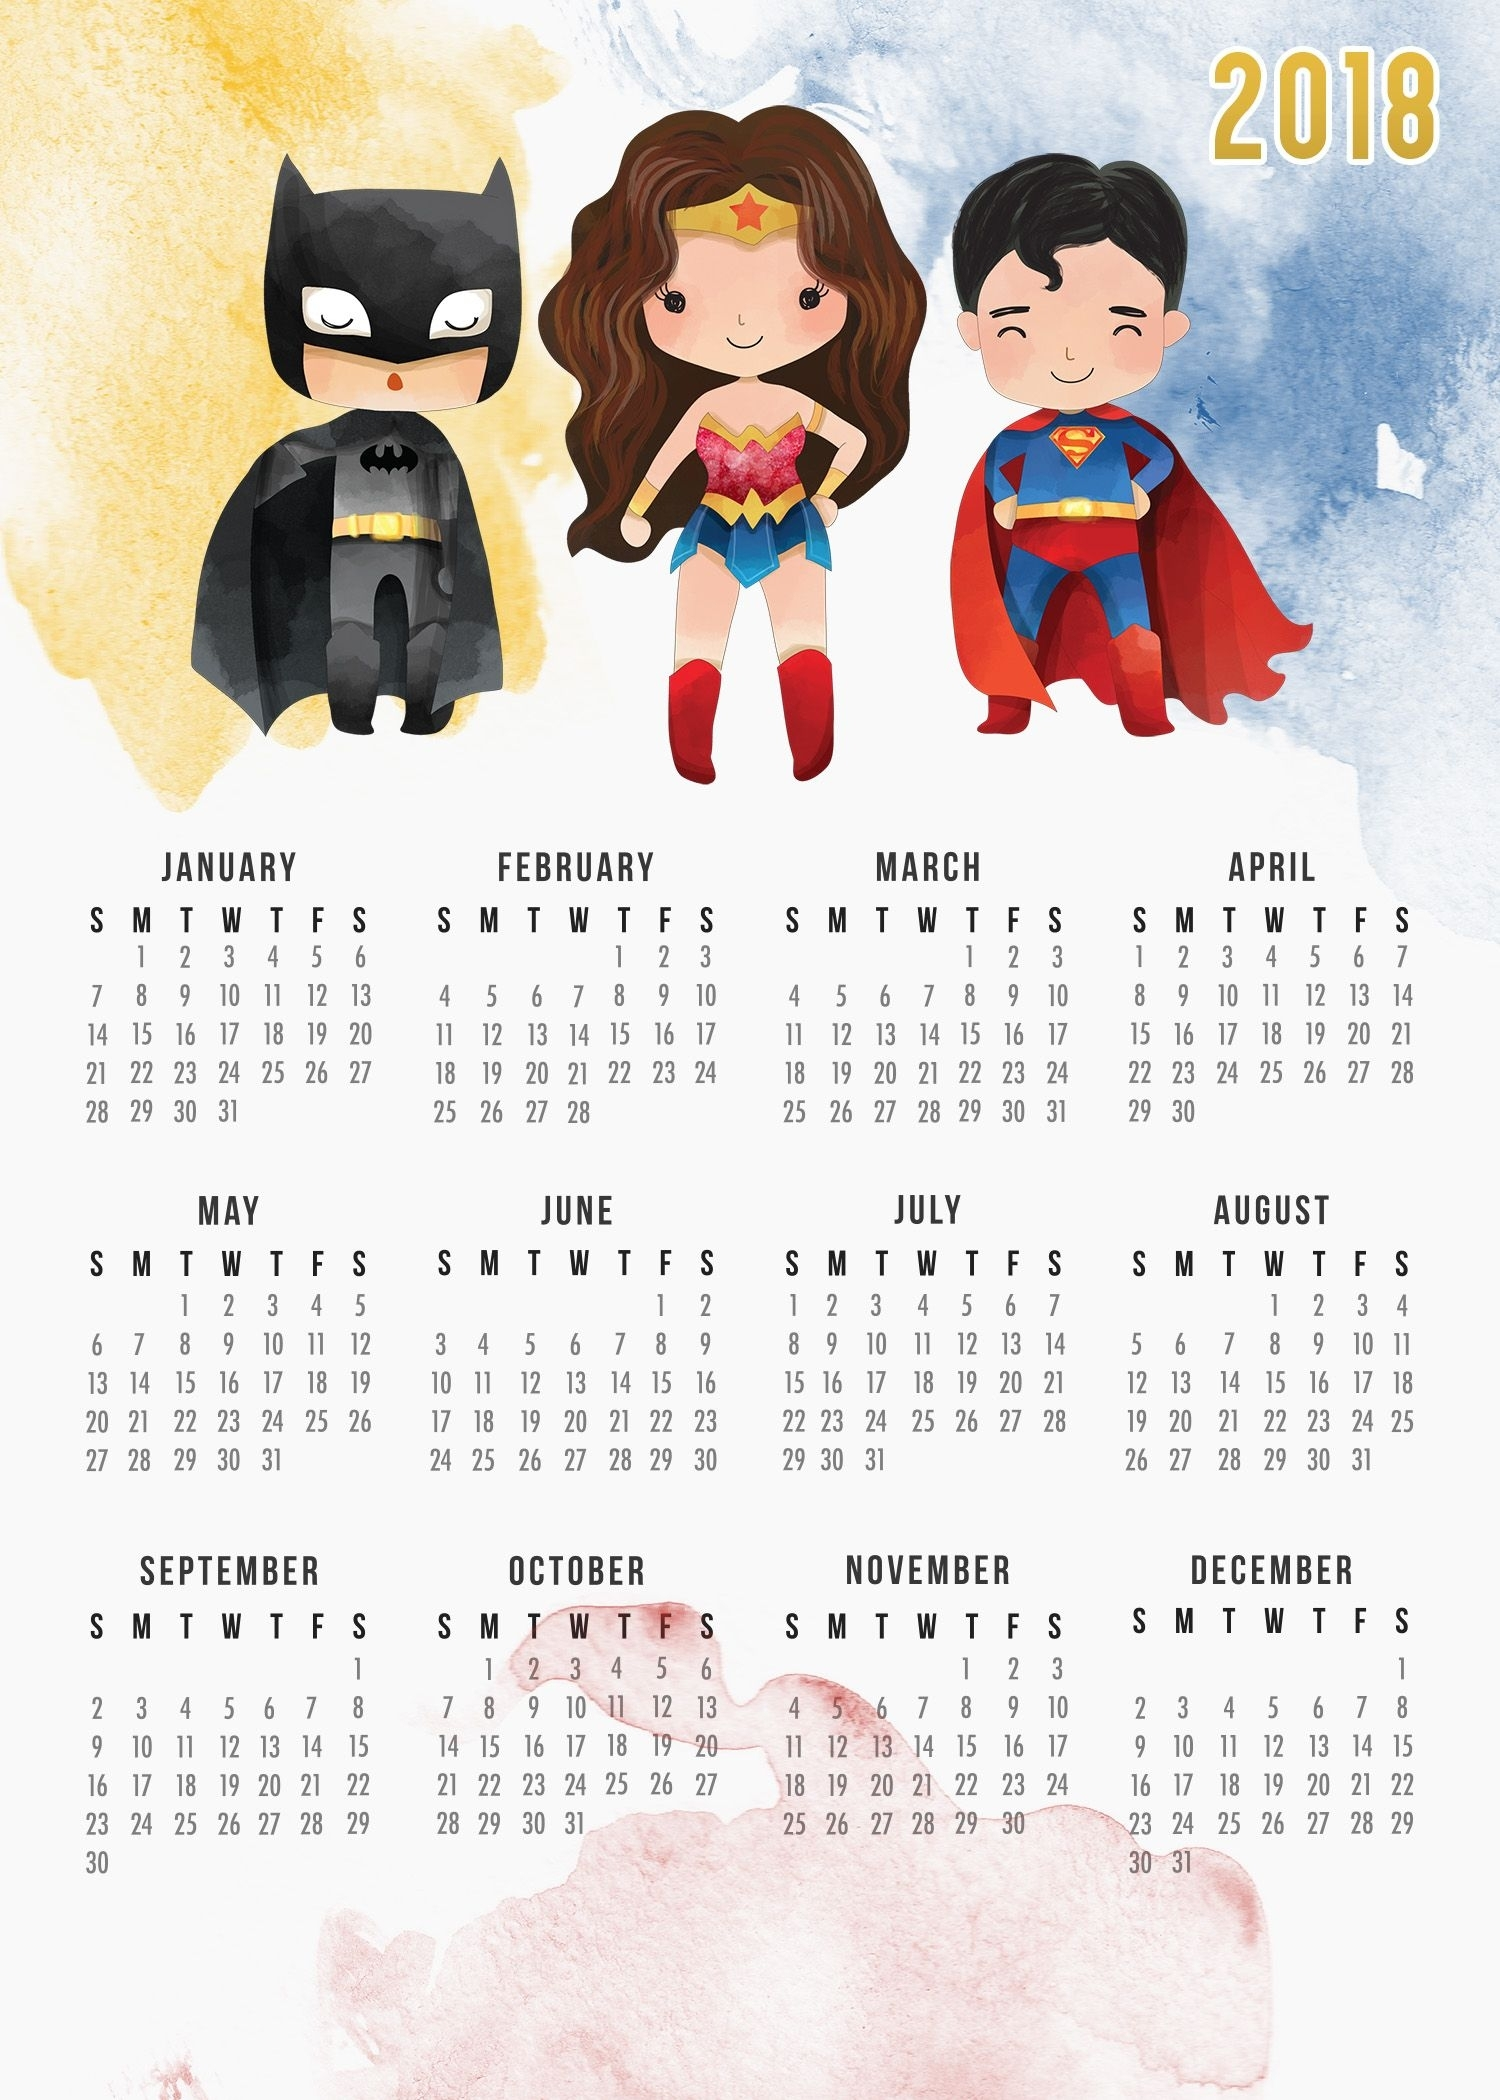 Free Printable 2018 Justice League Calendar | Creativity | Calendar intended for Free Printable Adult Superhero Calendars